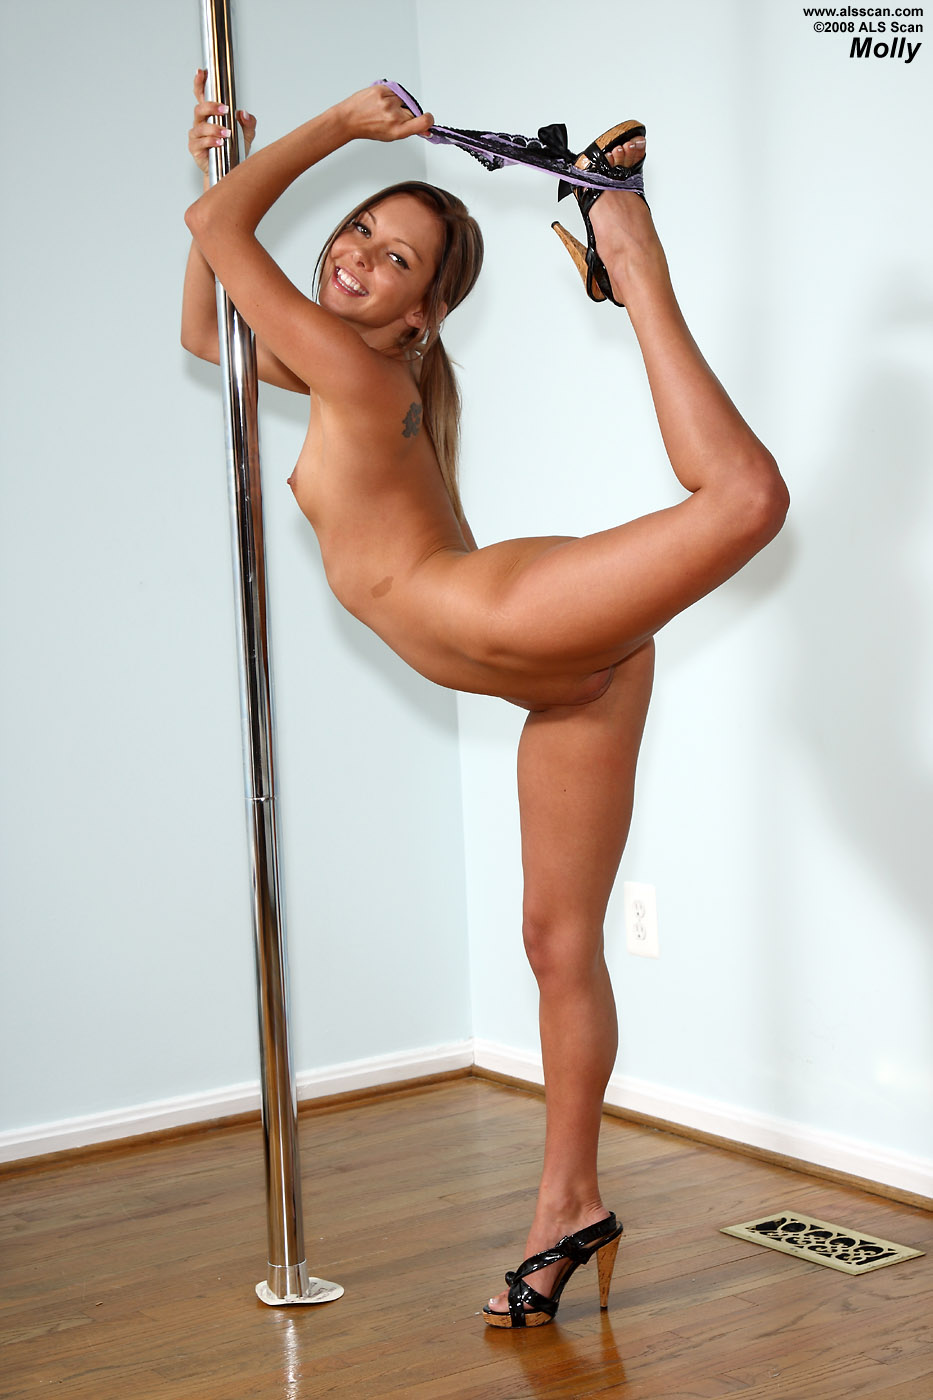 Words... Sexy nude pole dance that would